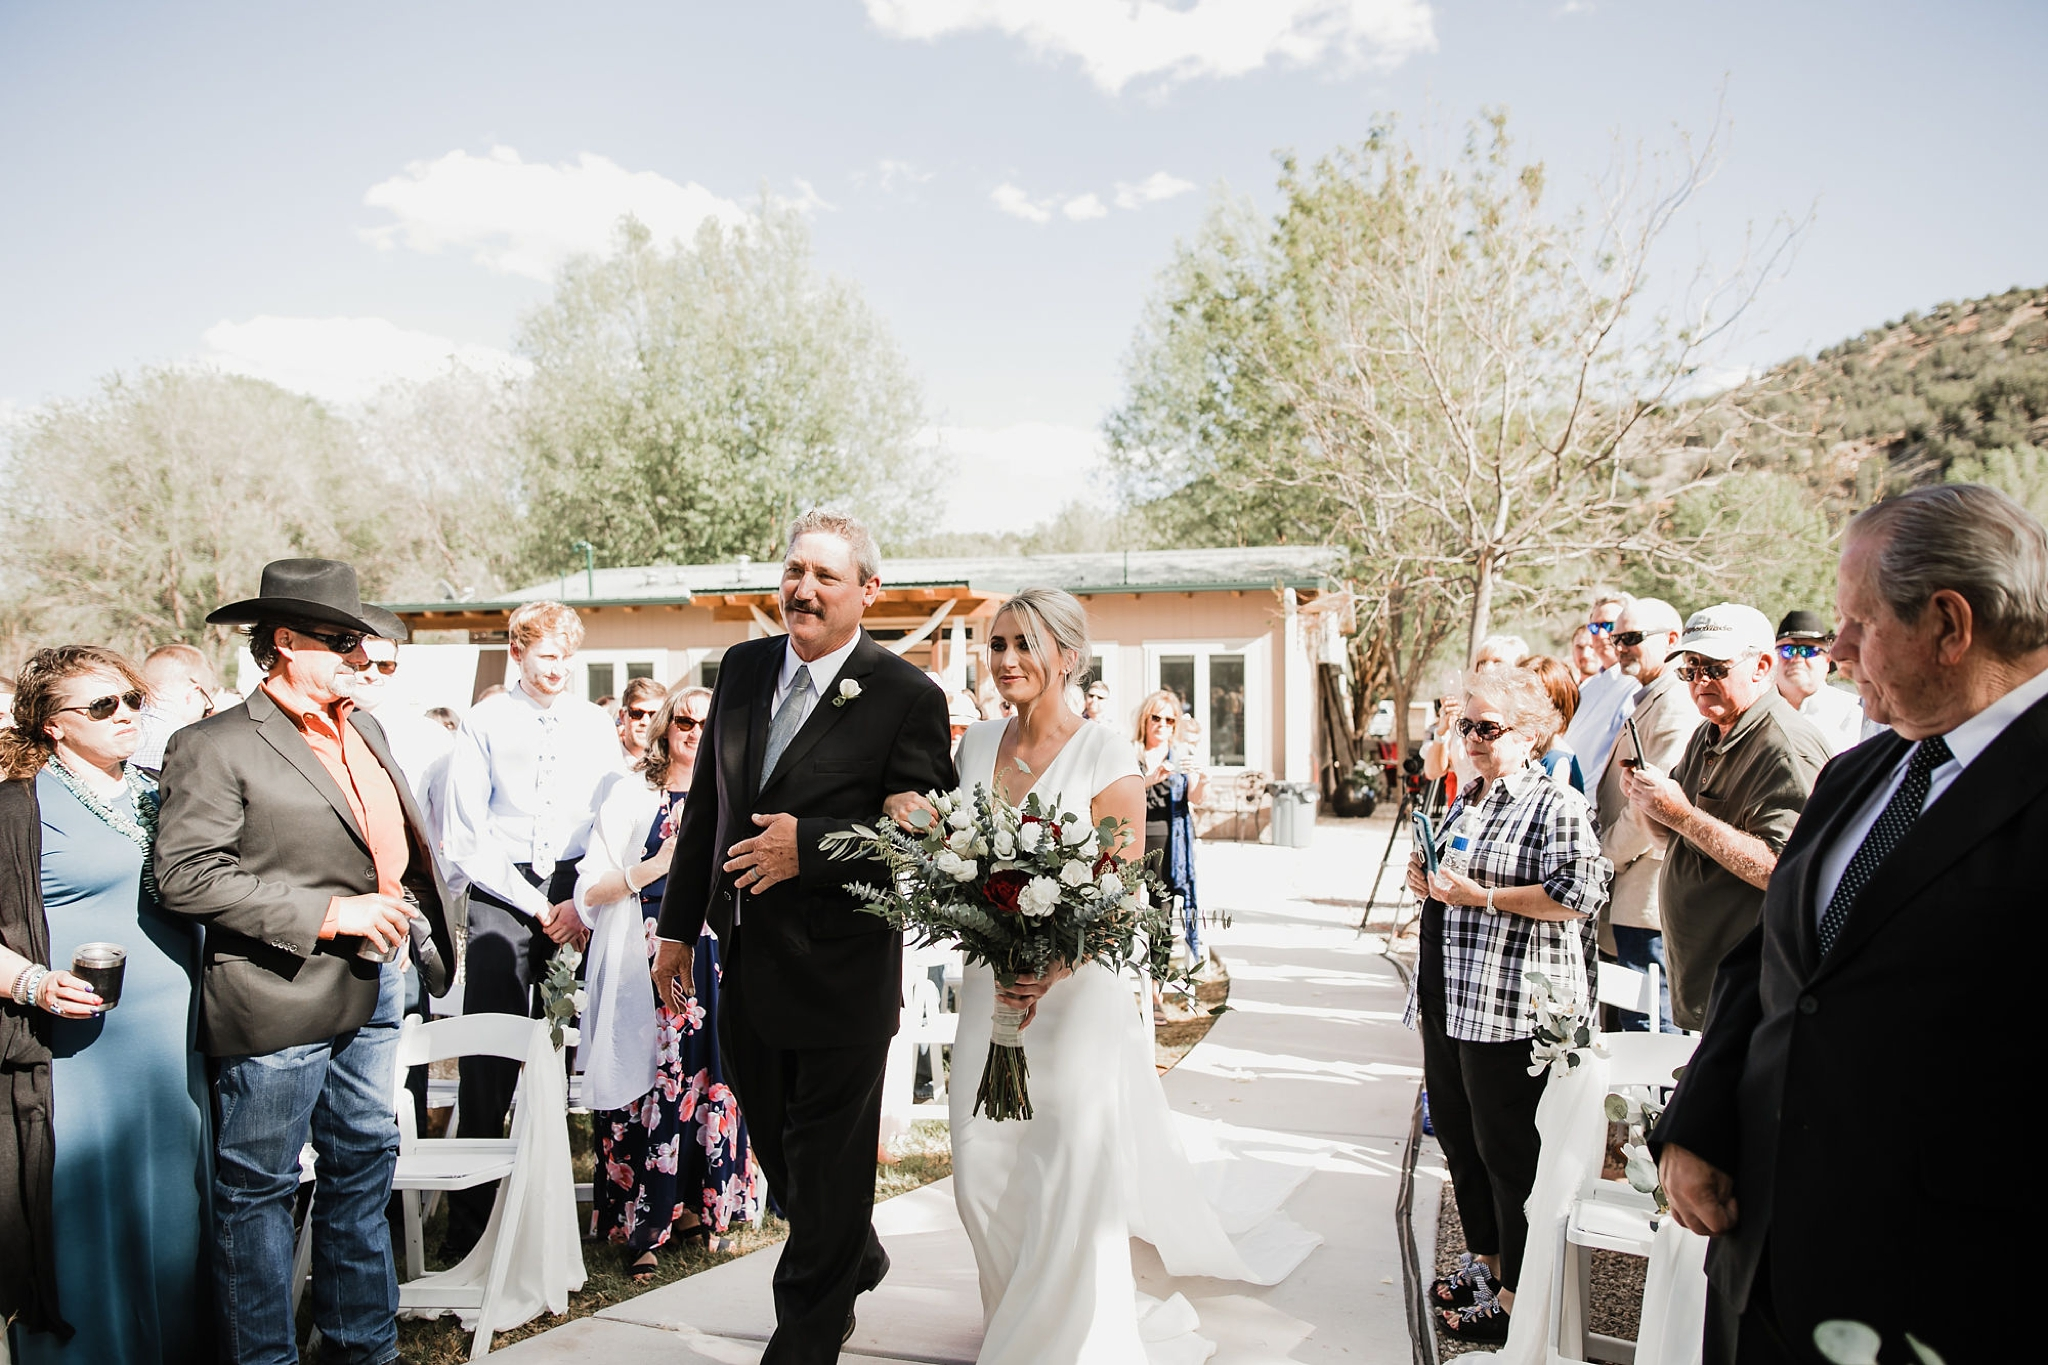 Alicia+lucia+photography+-+albuquerque+wedding+photographer+-+santa+fe+wedding+photography+-+new+mexico+wedding+photographer+-+new+mexico+wedding+-+ruidoso+wedding+-+southern+new+mexico+wedding+-+san+patricio+wedding+-+spring+wedding_0062.jpg